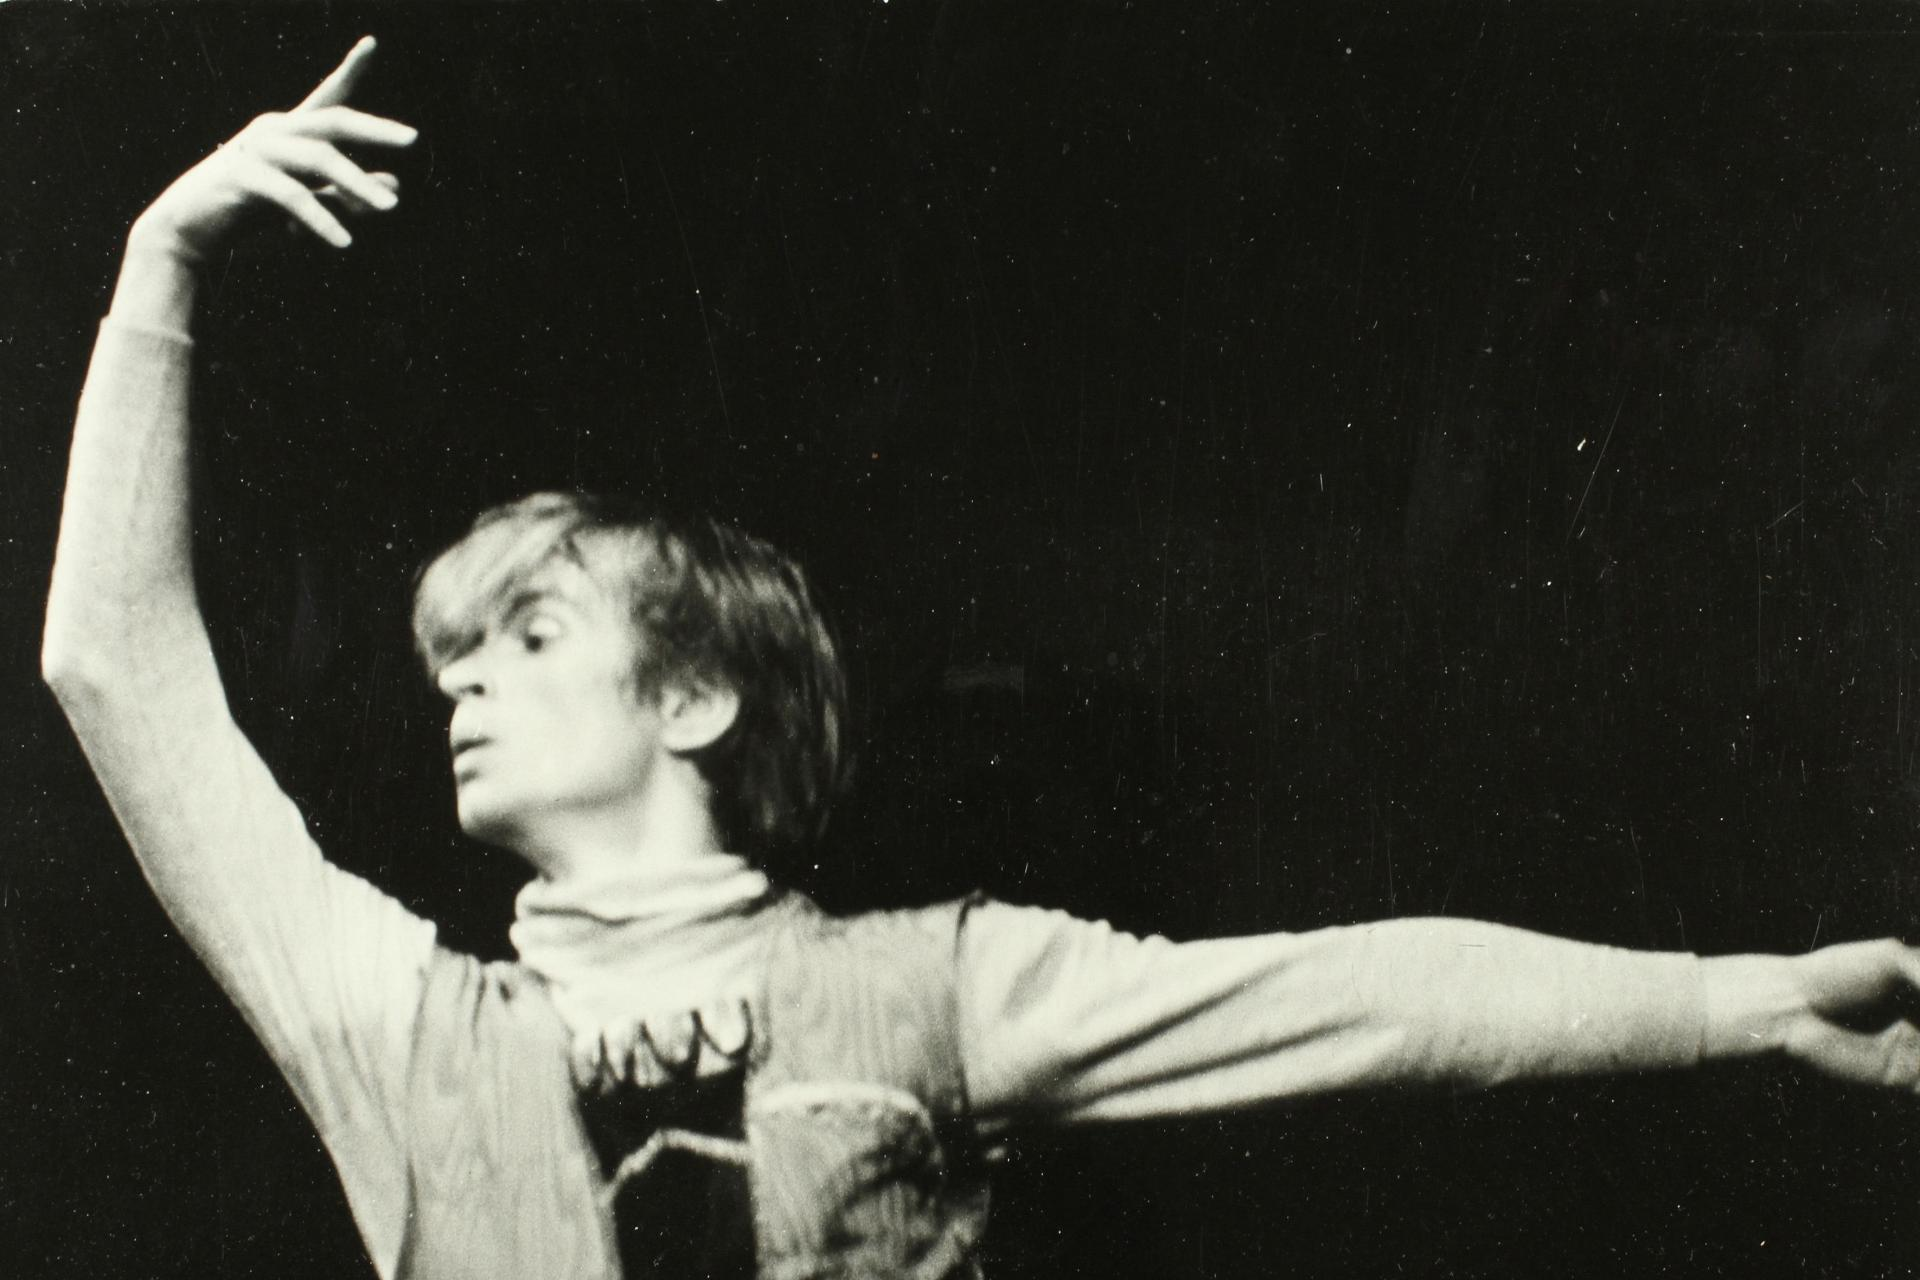 The famous dancer Rudolf Nureyev who produced his versions of famous ballets. Photo: Franz Hubmann/Imagno/Apa-Picturedesk via AFP